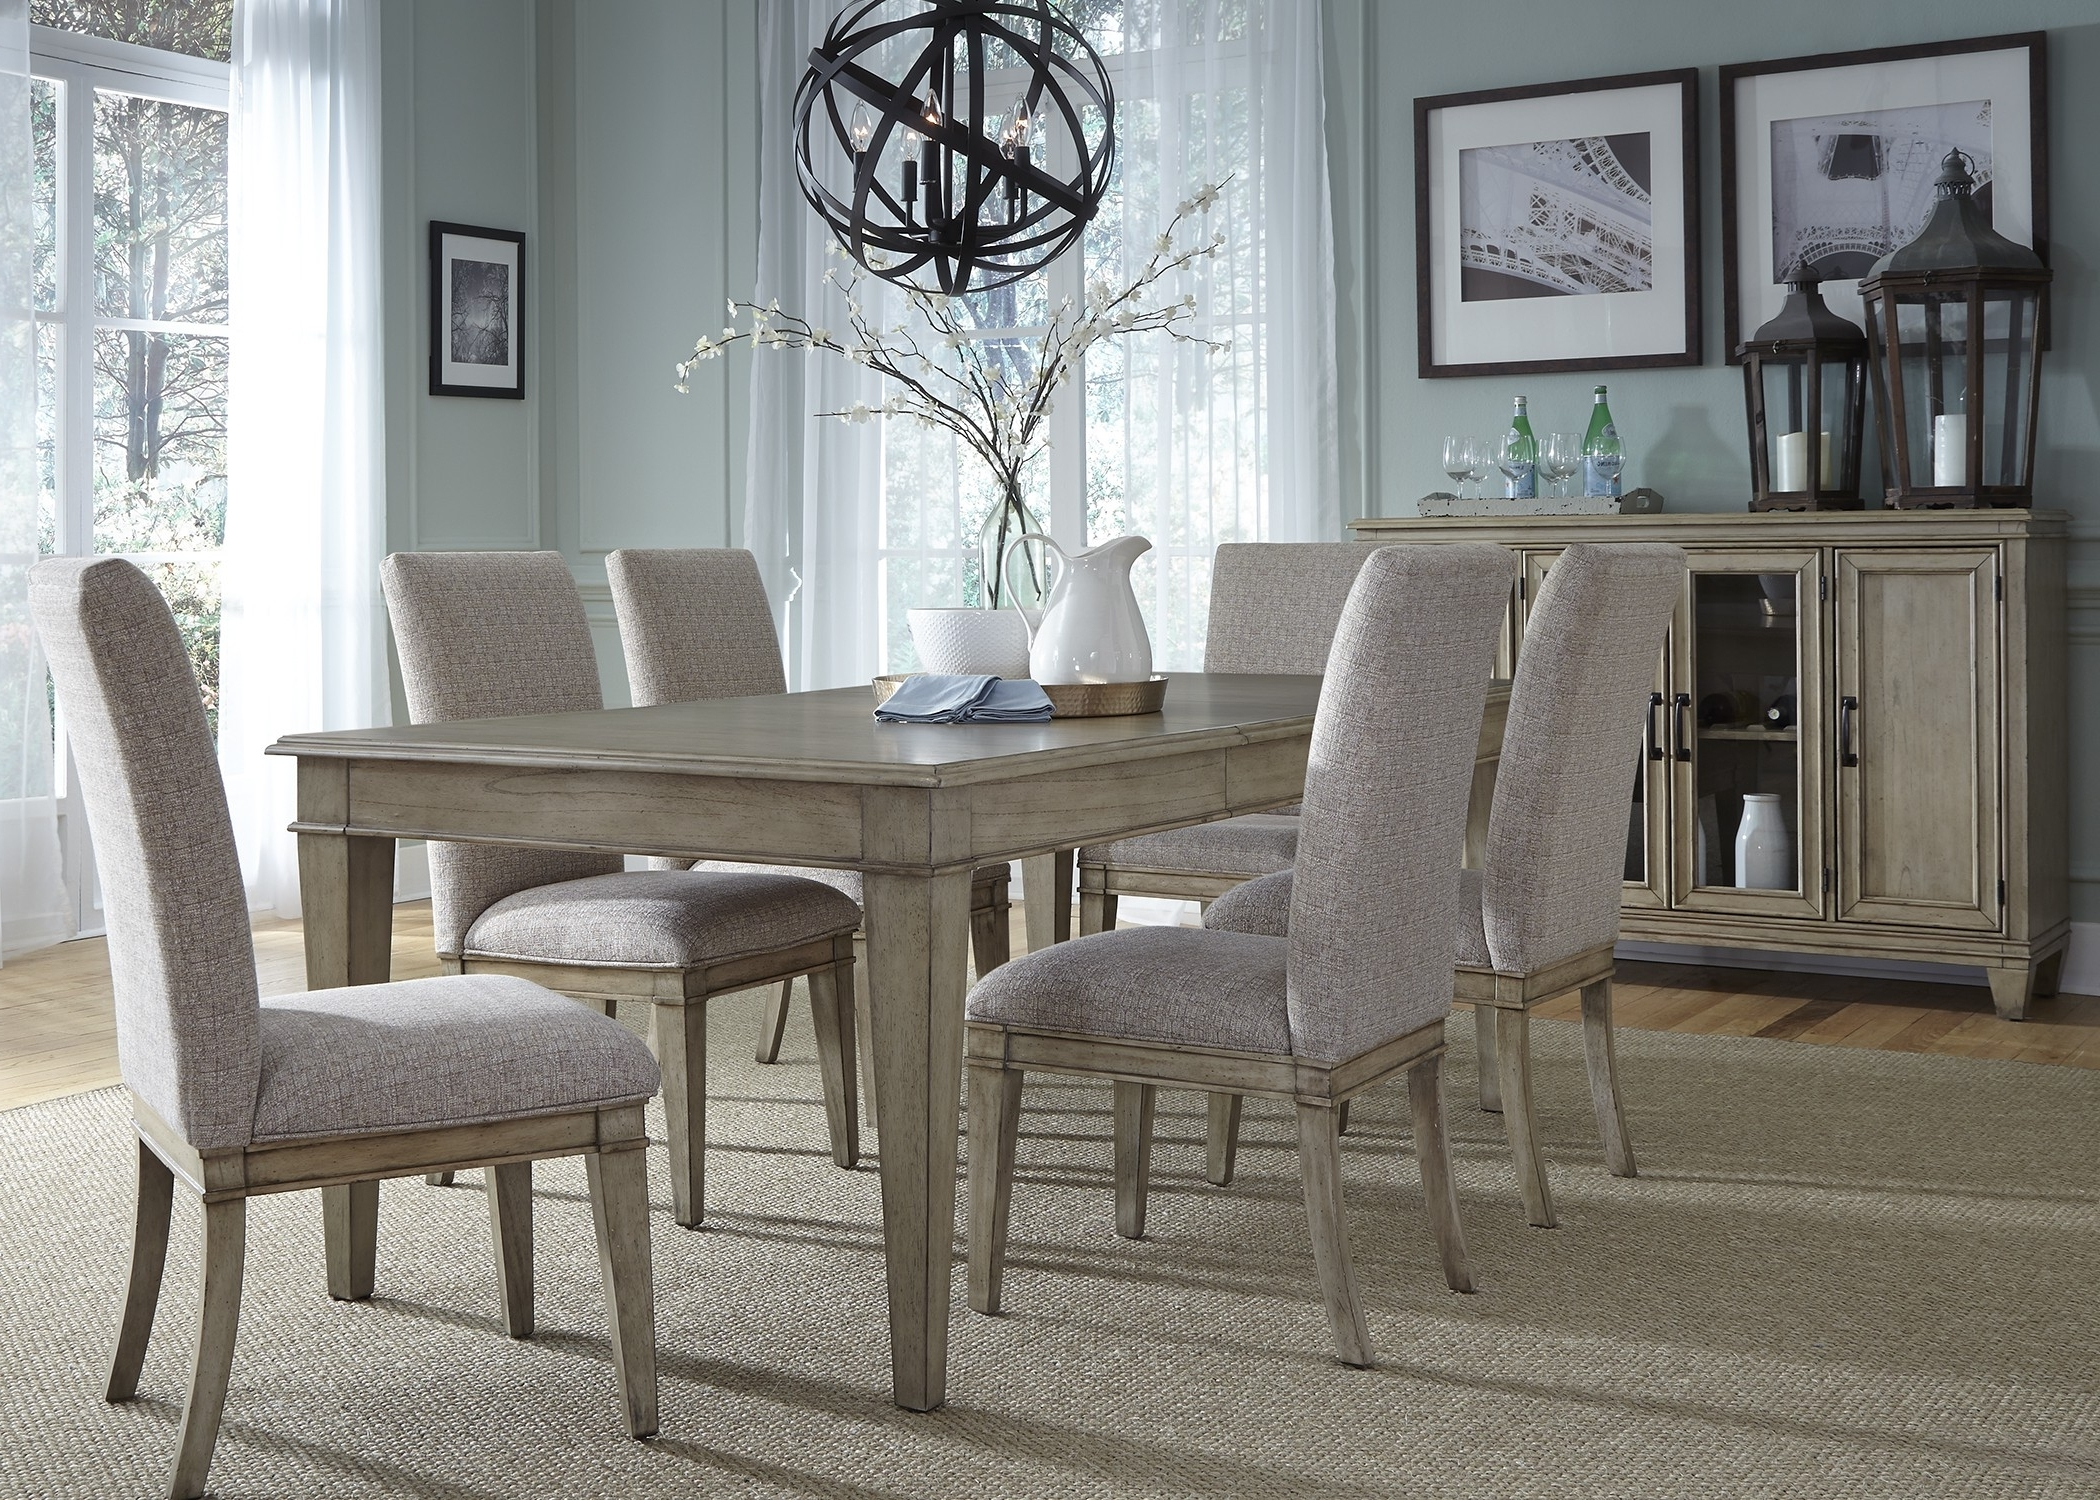 Jaxon 7 Piece Rectangle Dining Sets With Upholstered Chairs With Regard To Best And Newest 18. Grayton Grove Extendable Dining Room Set From Liberty Coleman (Gallery 12 of 25)